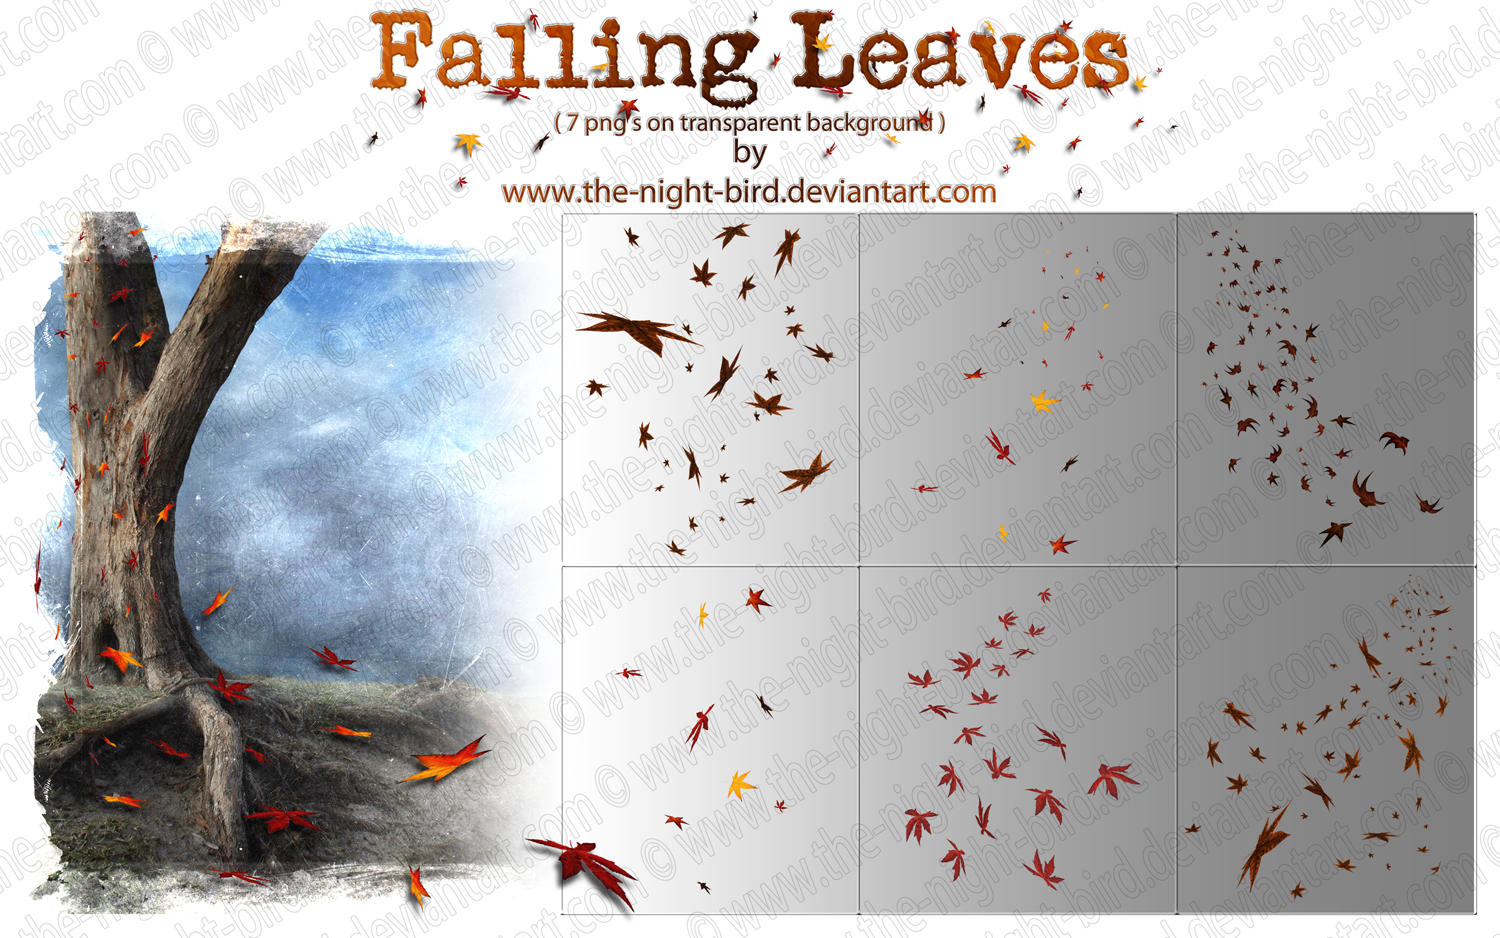 Fall Leaf Wallpaper For Mobile Falling Leaves Png S By The Night Bird On Deviantart